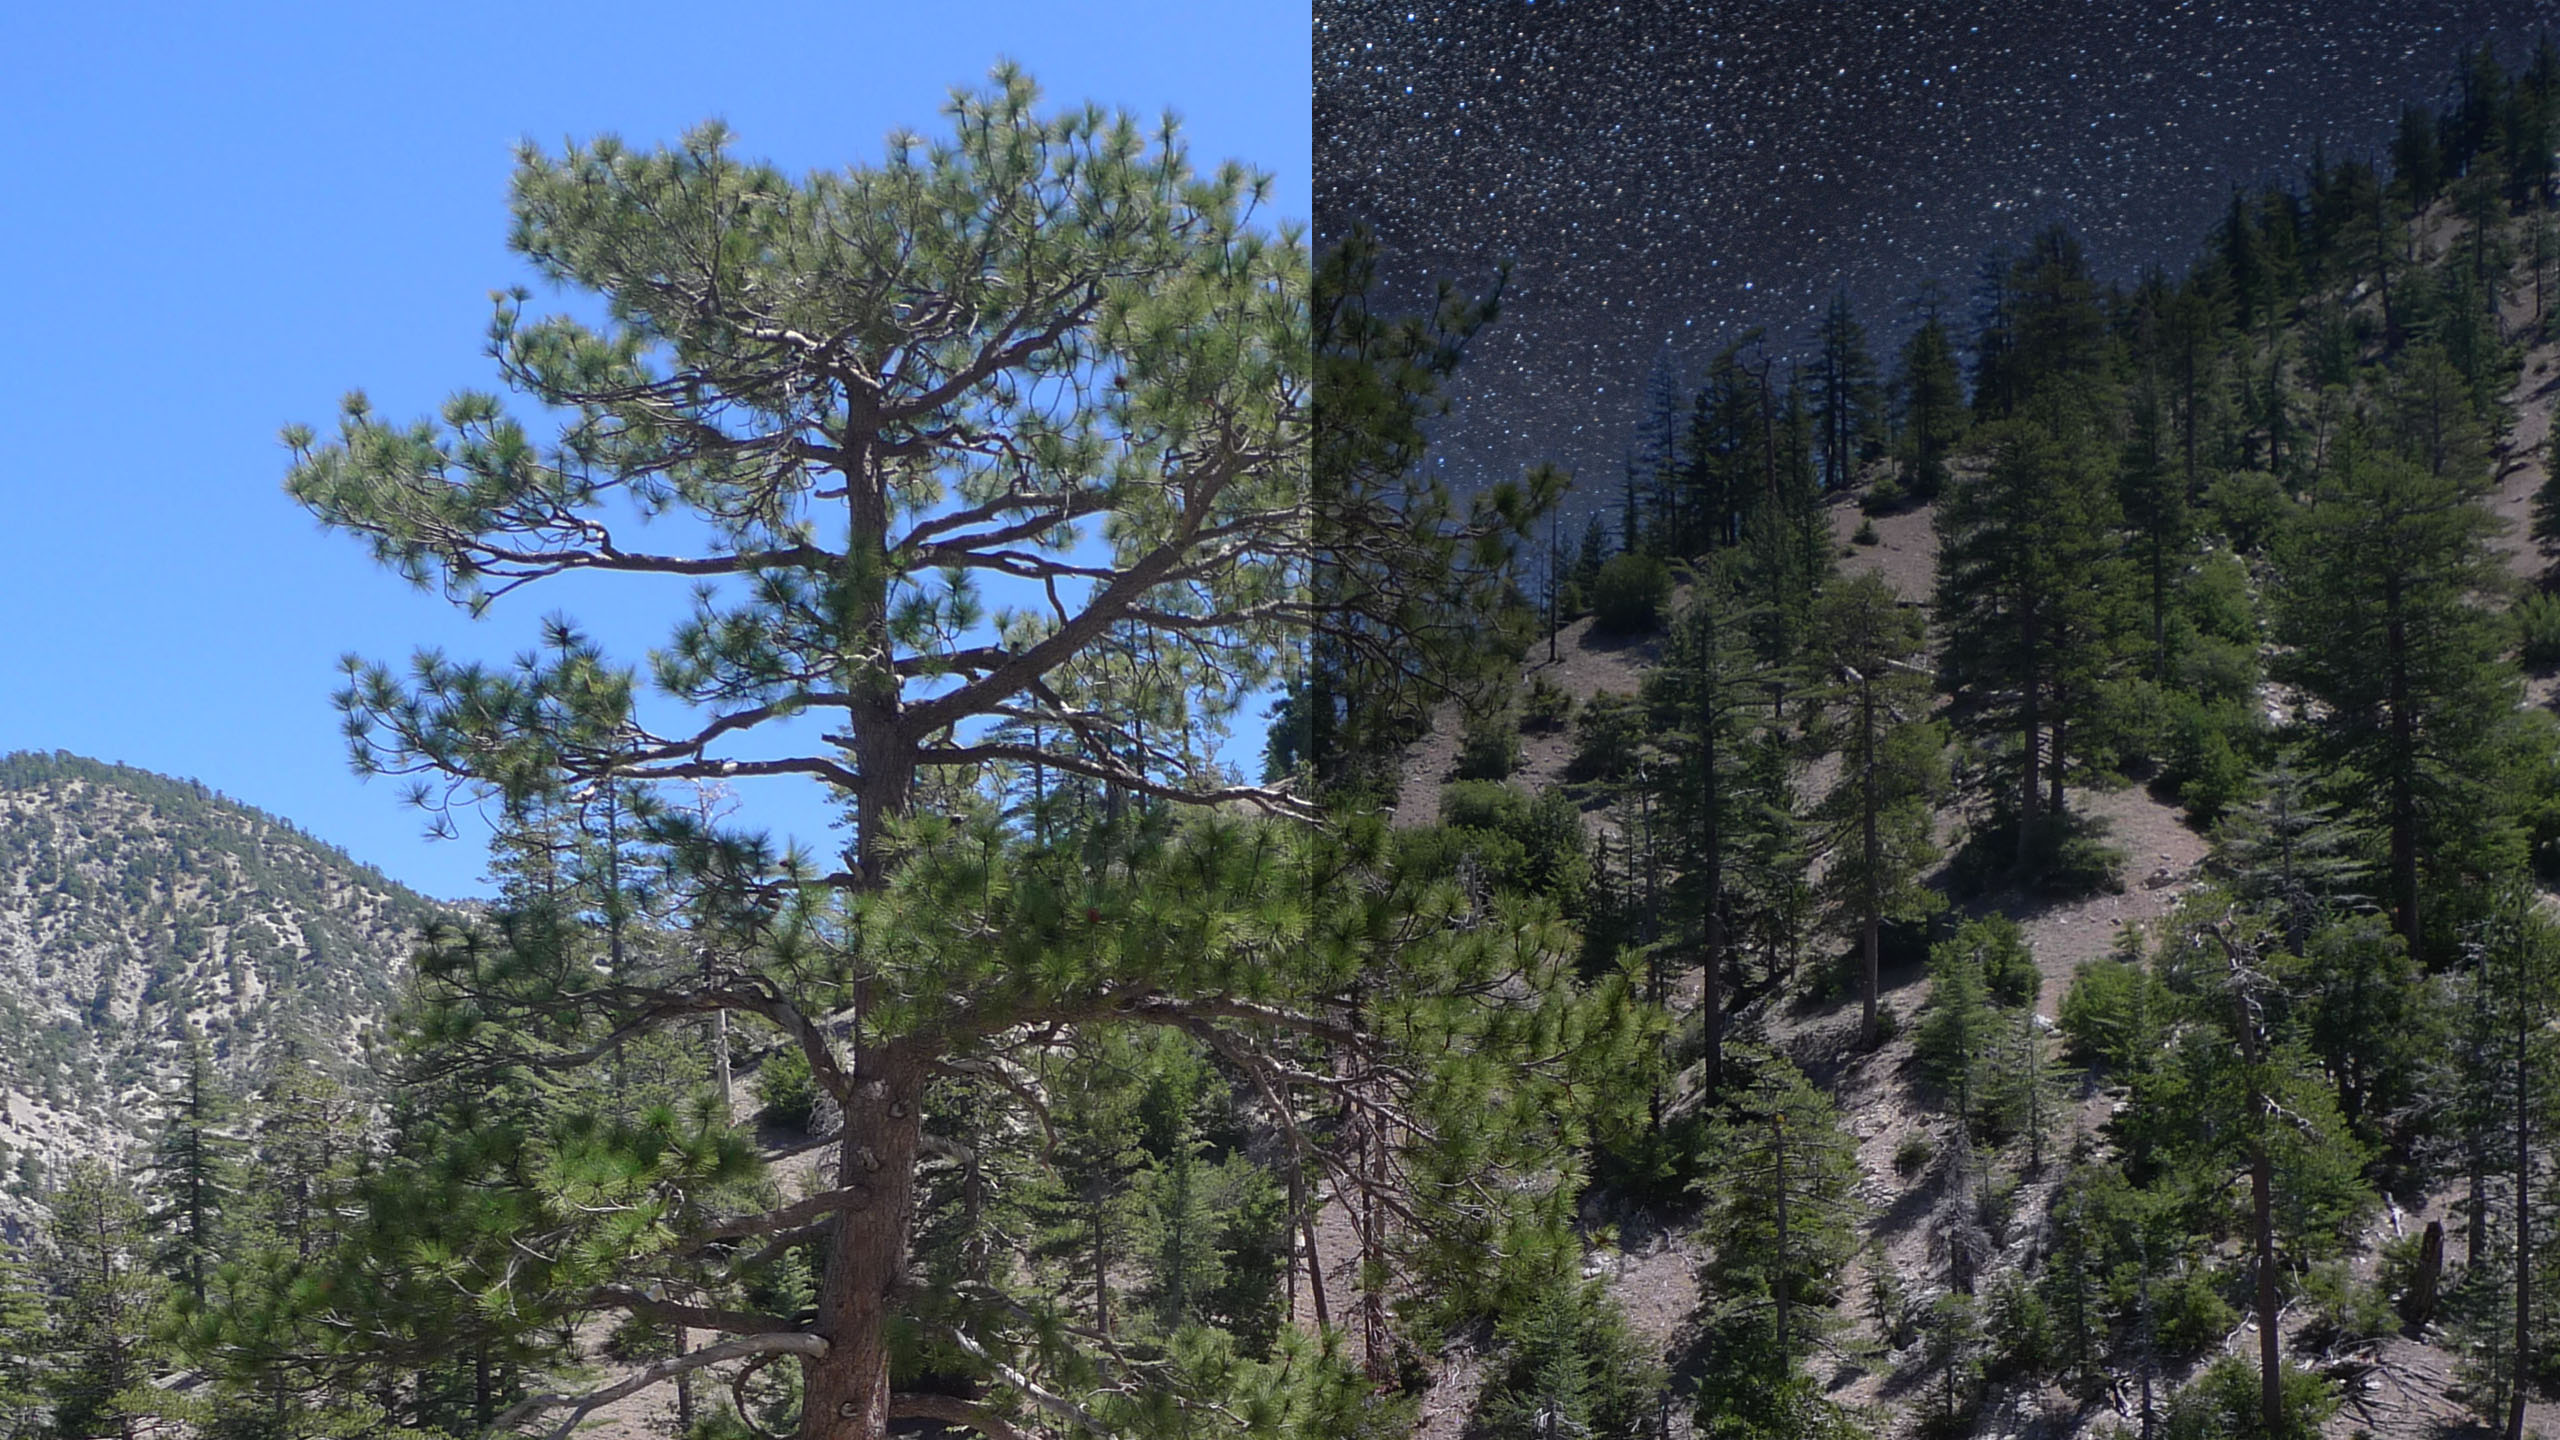 PHOTOFOCUS 2560x1440px sky replacement before and after